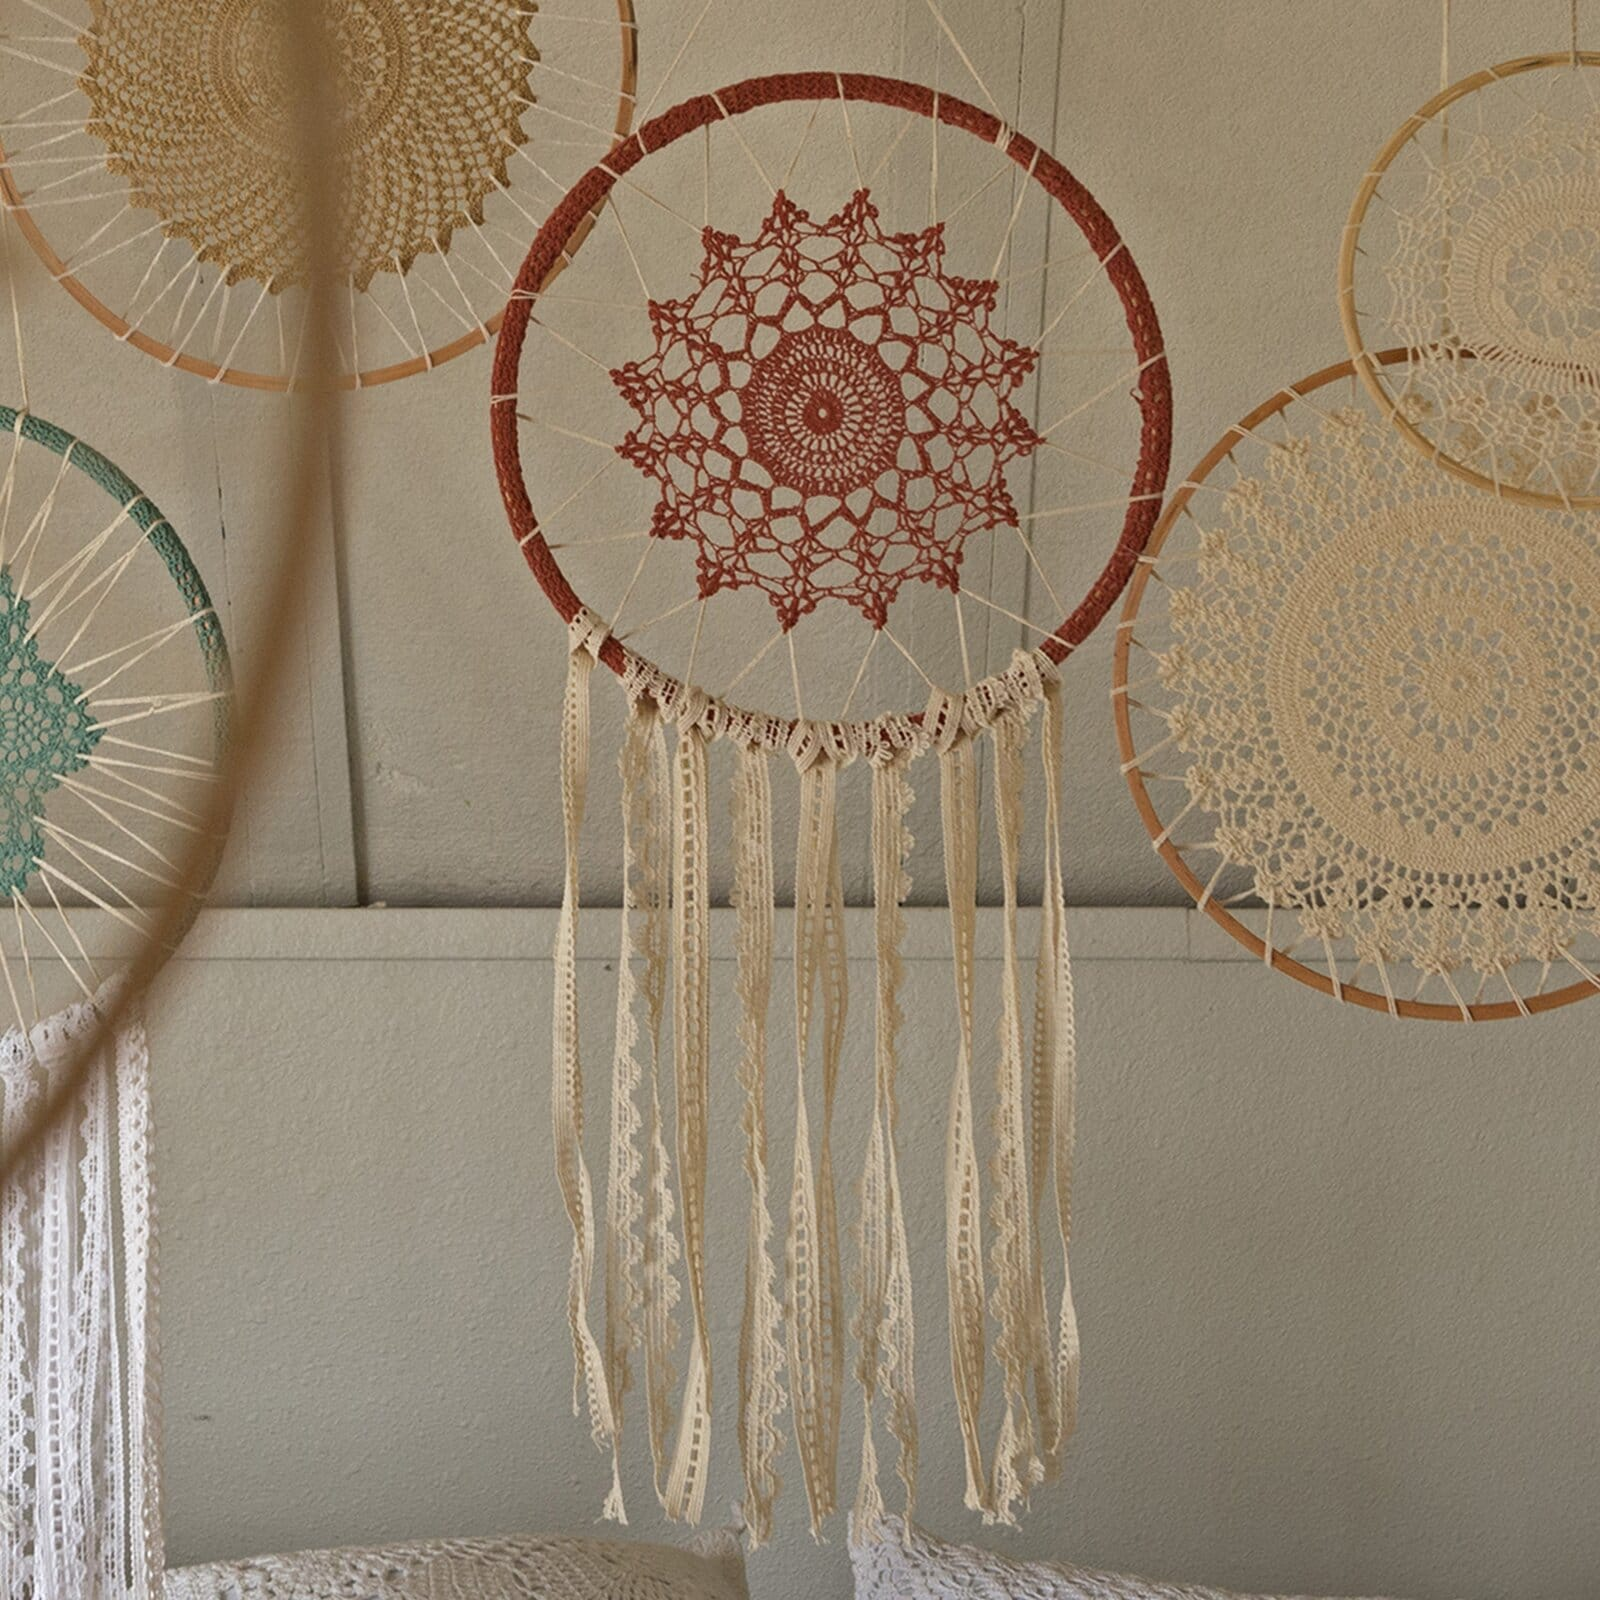 Bring In a Dreamcatcher for Boho Authenticity